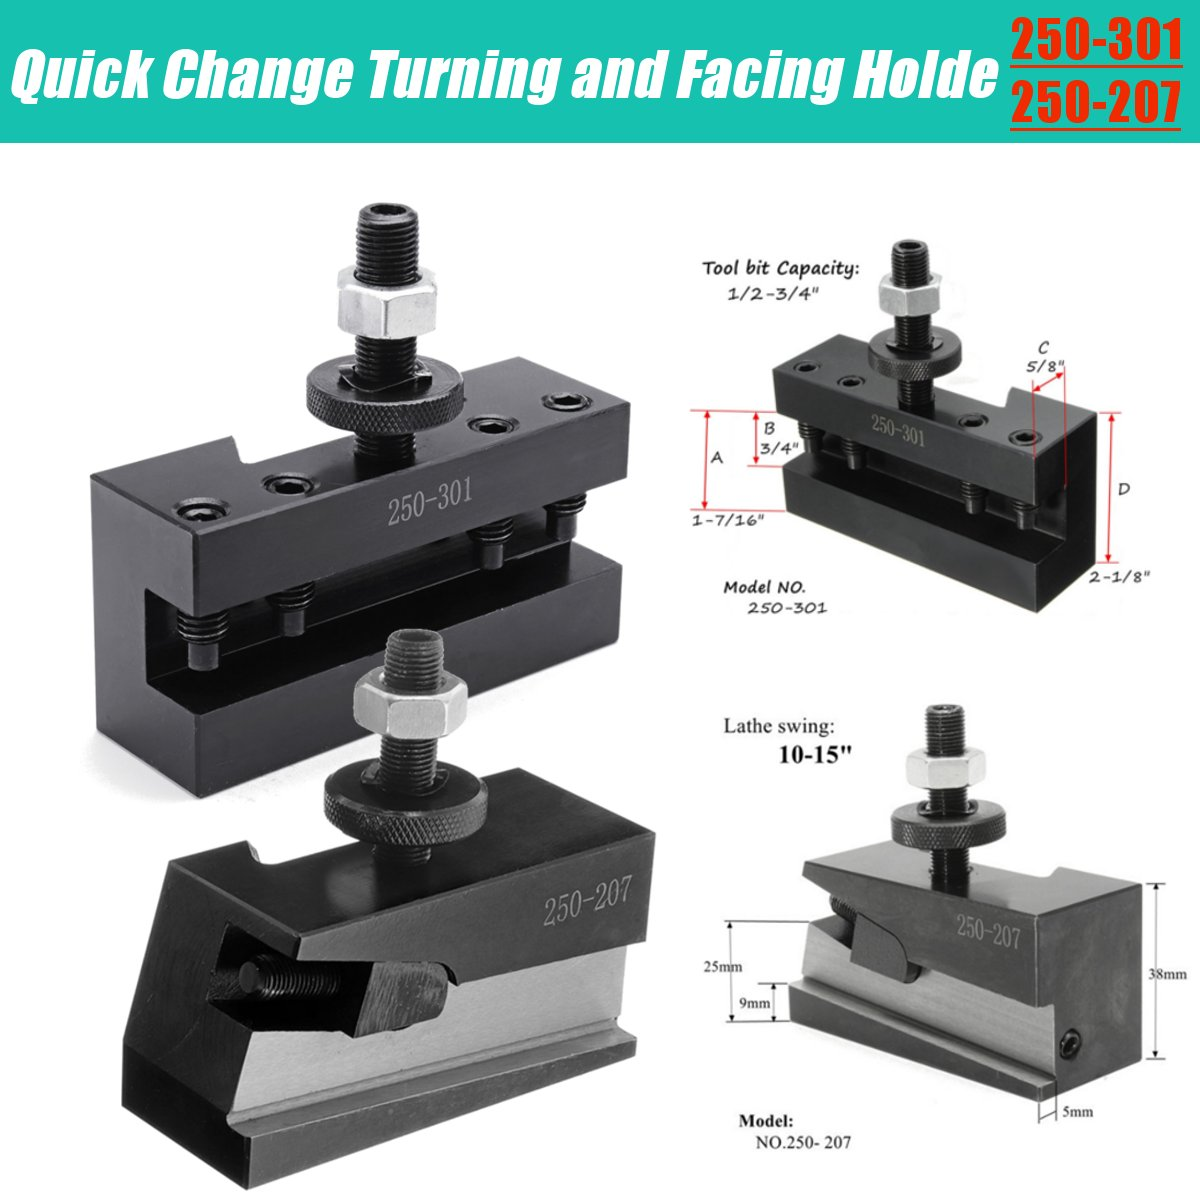 1pc 250-207/250-30 Turning Facing Holder Lathe Quick Change Tool Post Holder For CCMT TCMT Milling Cutting Inserts